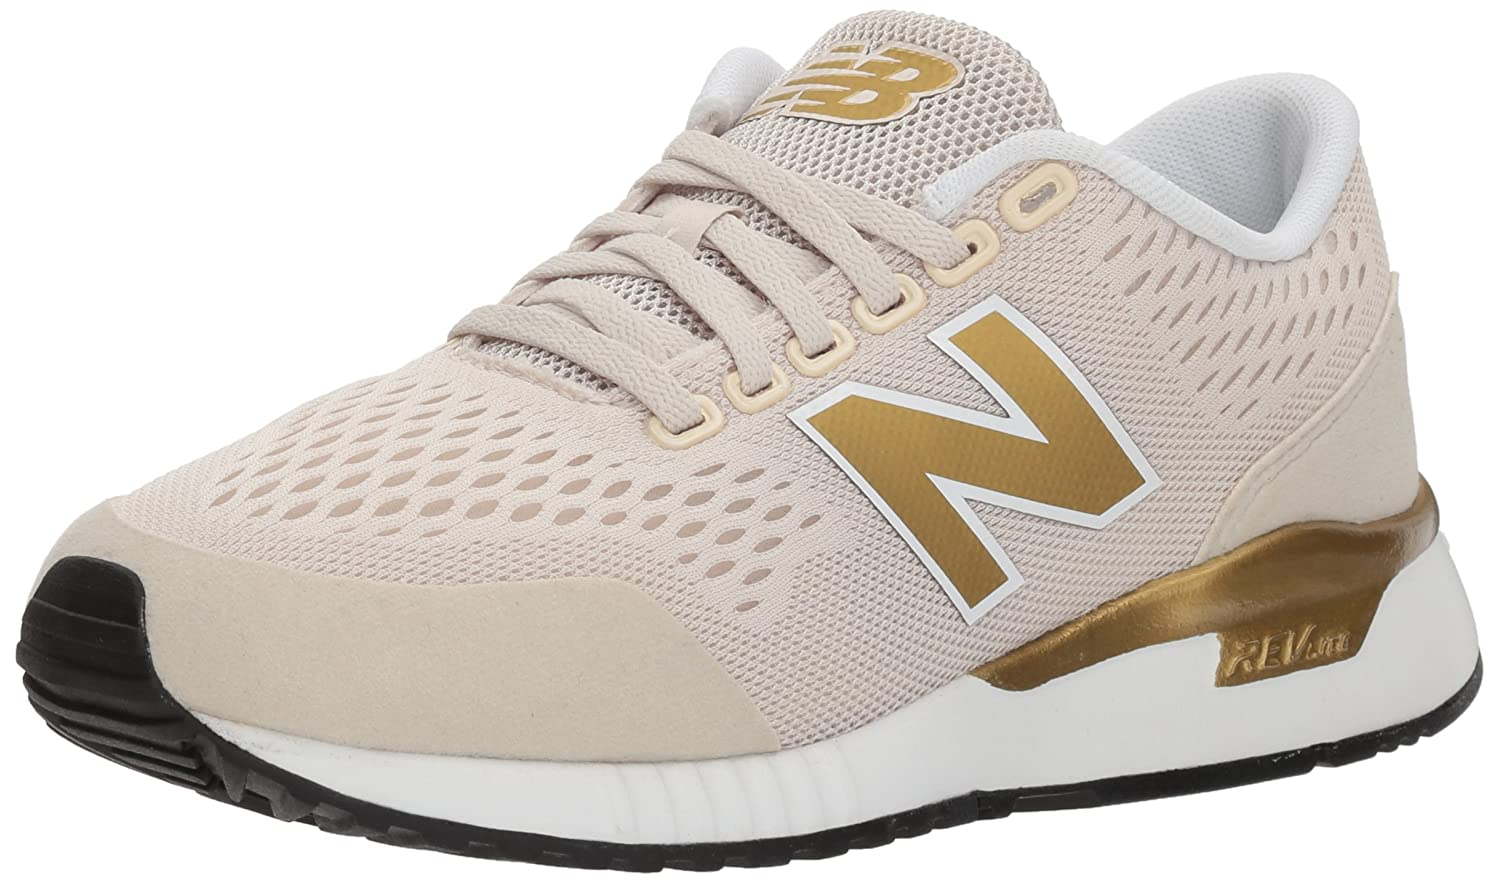 New Balance Women's 005v1 Sneaker B06XXC9RPJ 11 B(M) US|Moonbeam/Brine Metallic